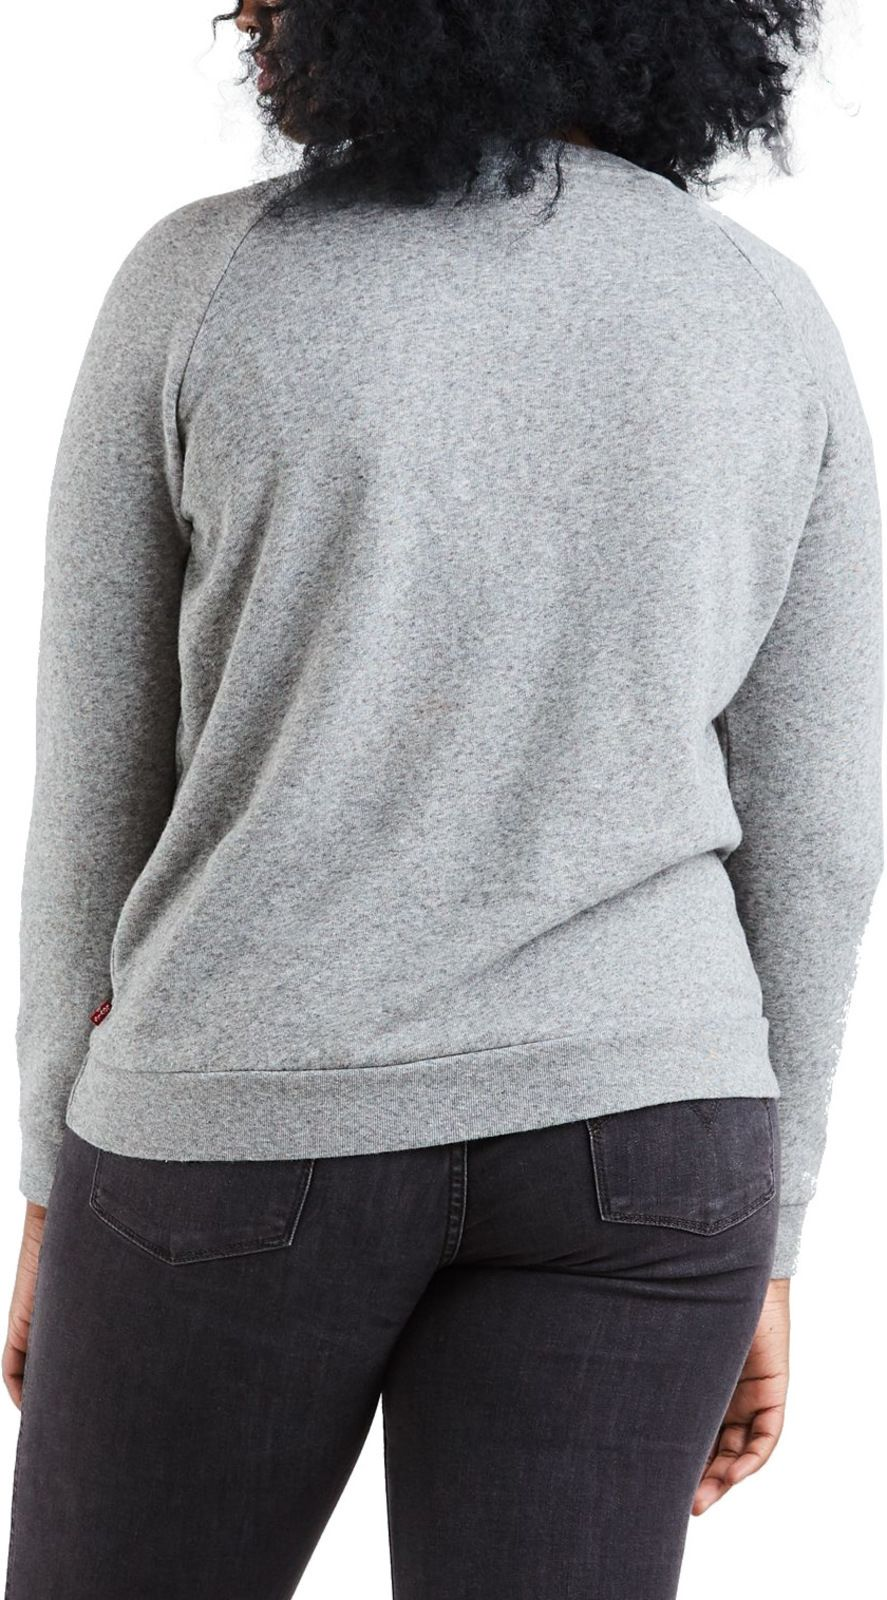 Levi's Women's Relaxed Graphic Sweatshirt Grey